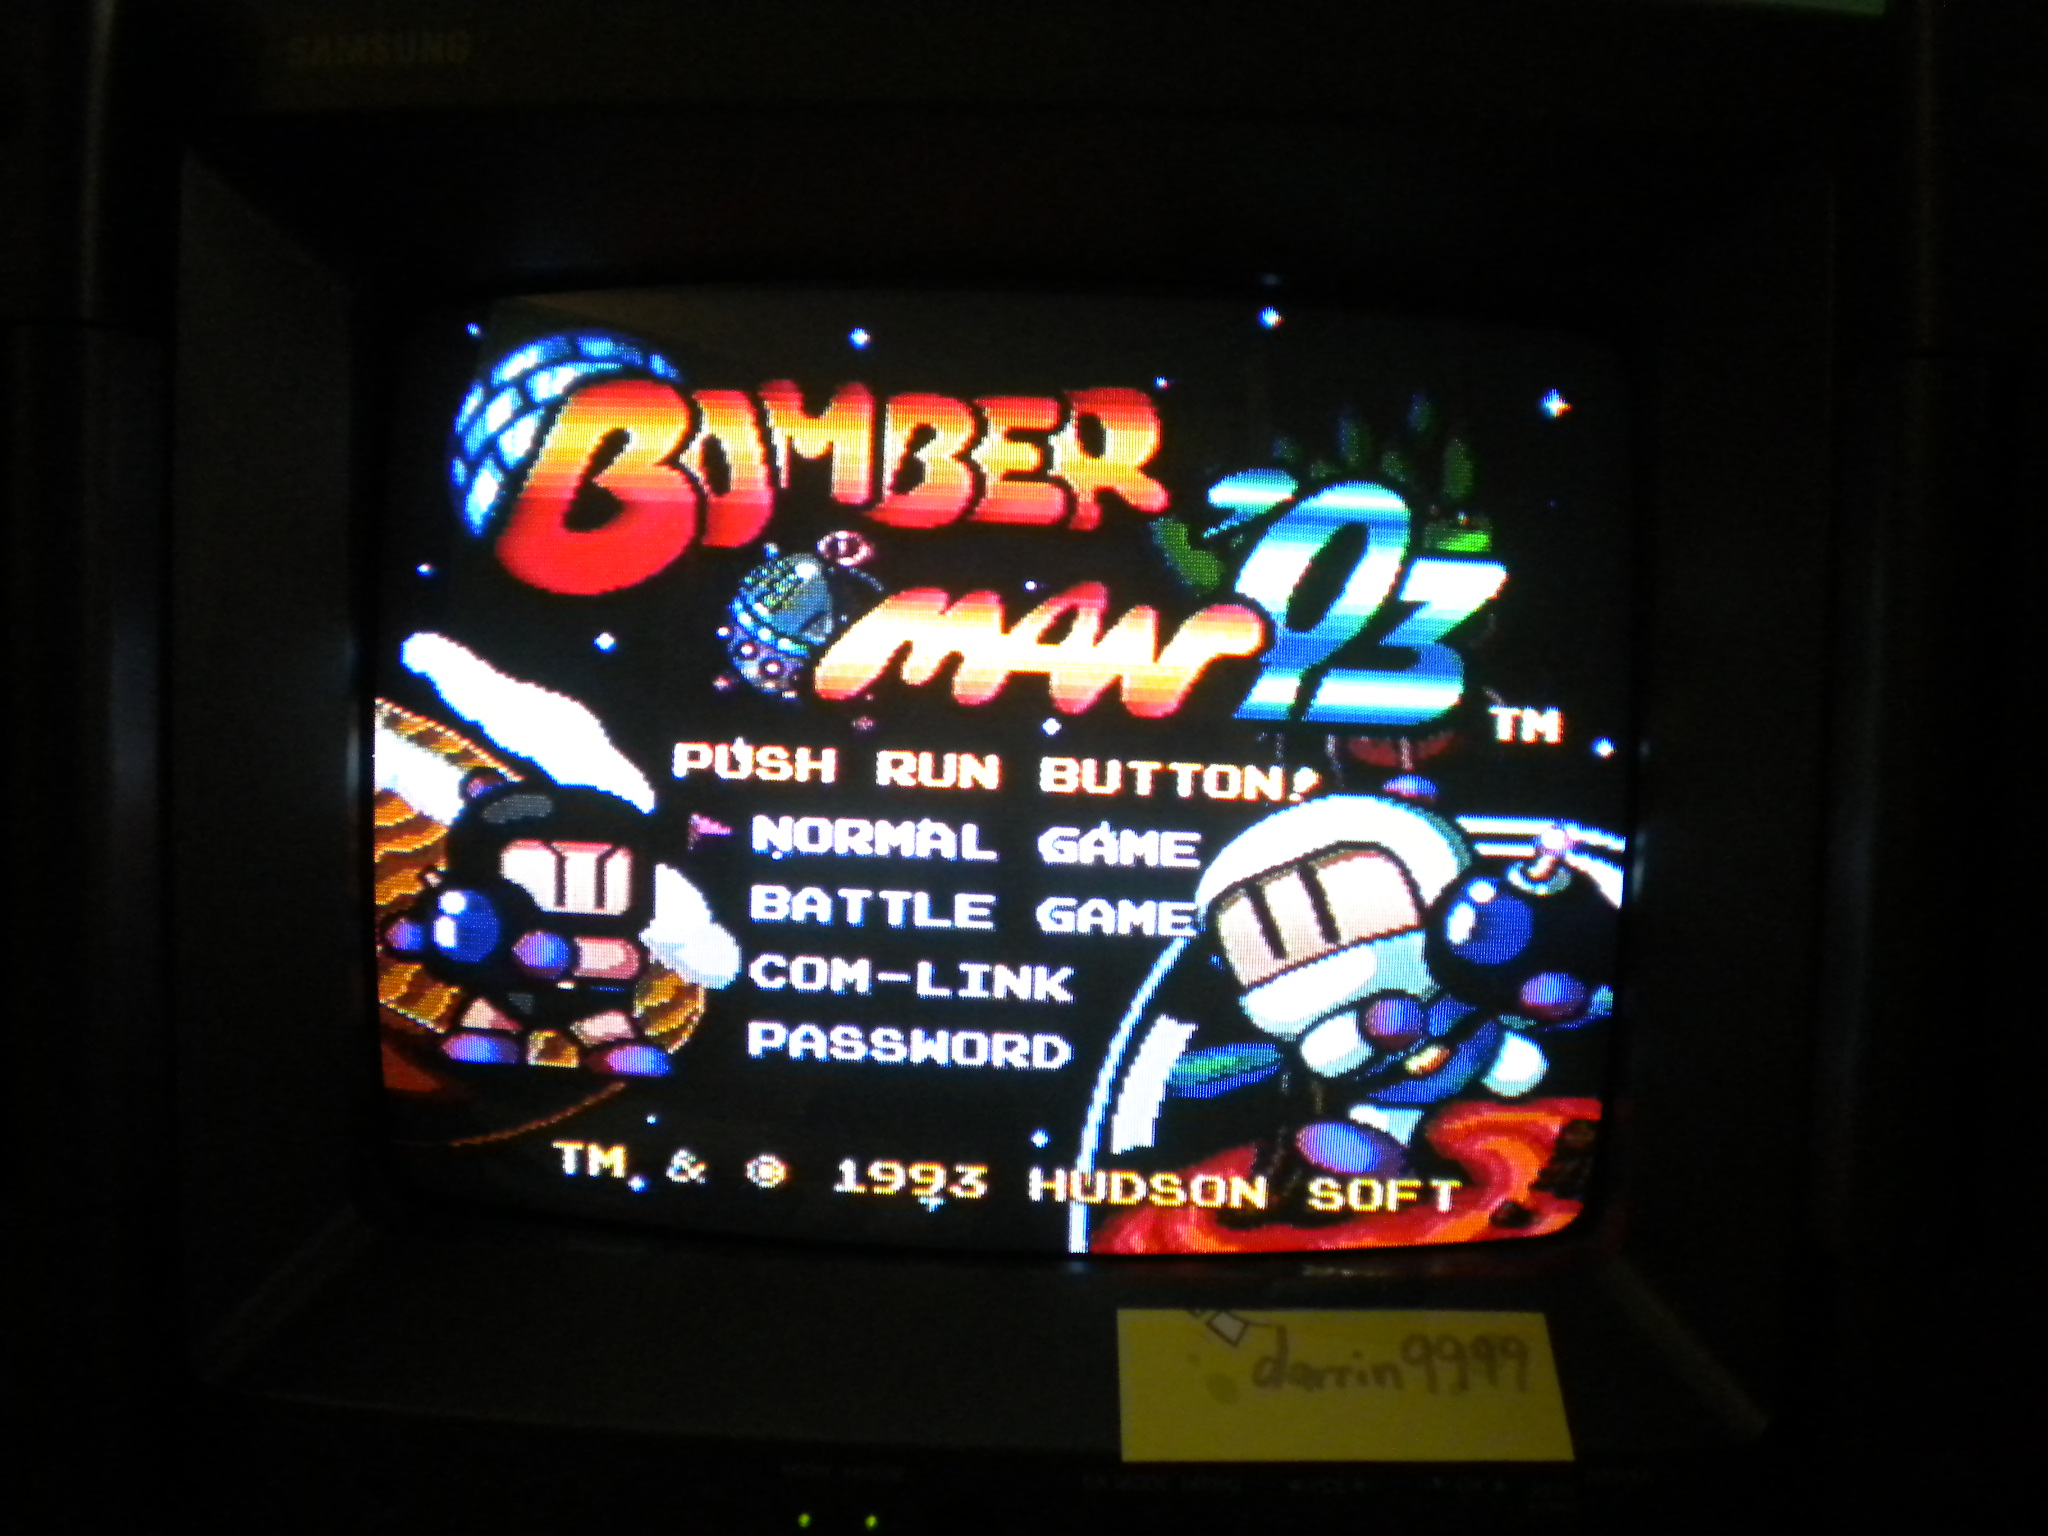 Bomberman 93 [Normal] 11,300 points